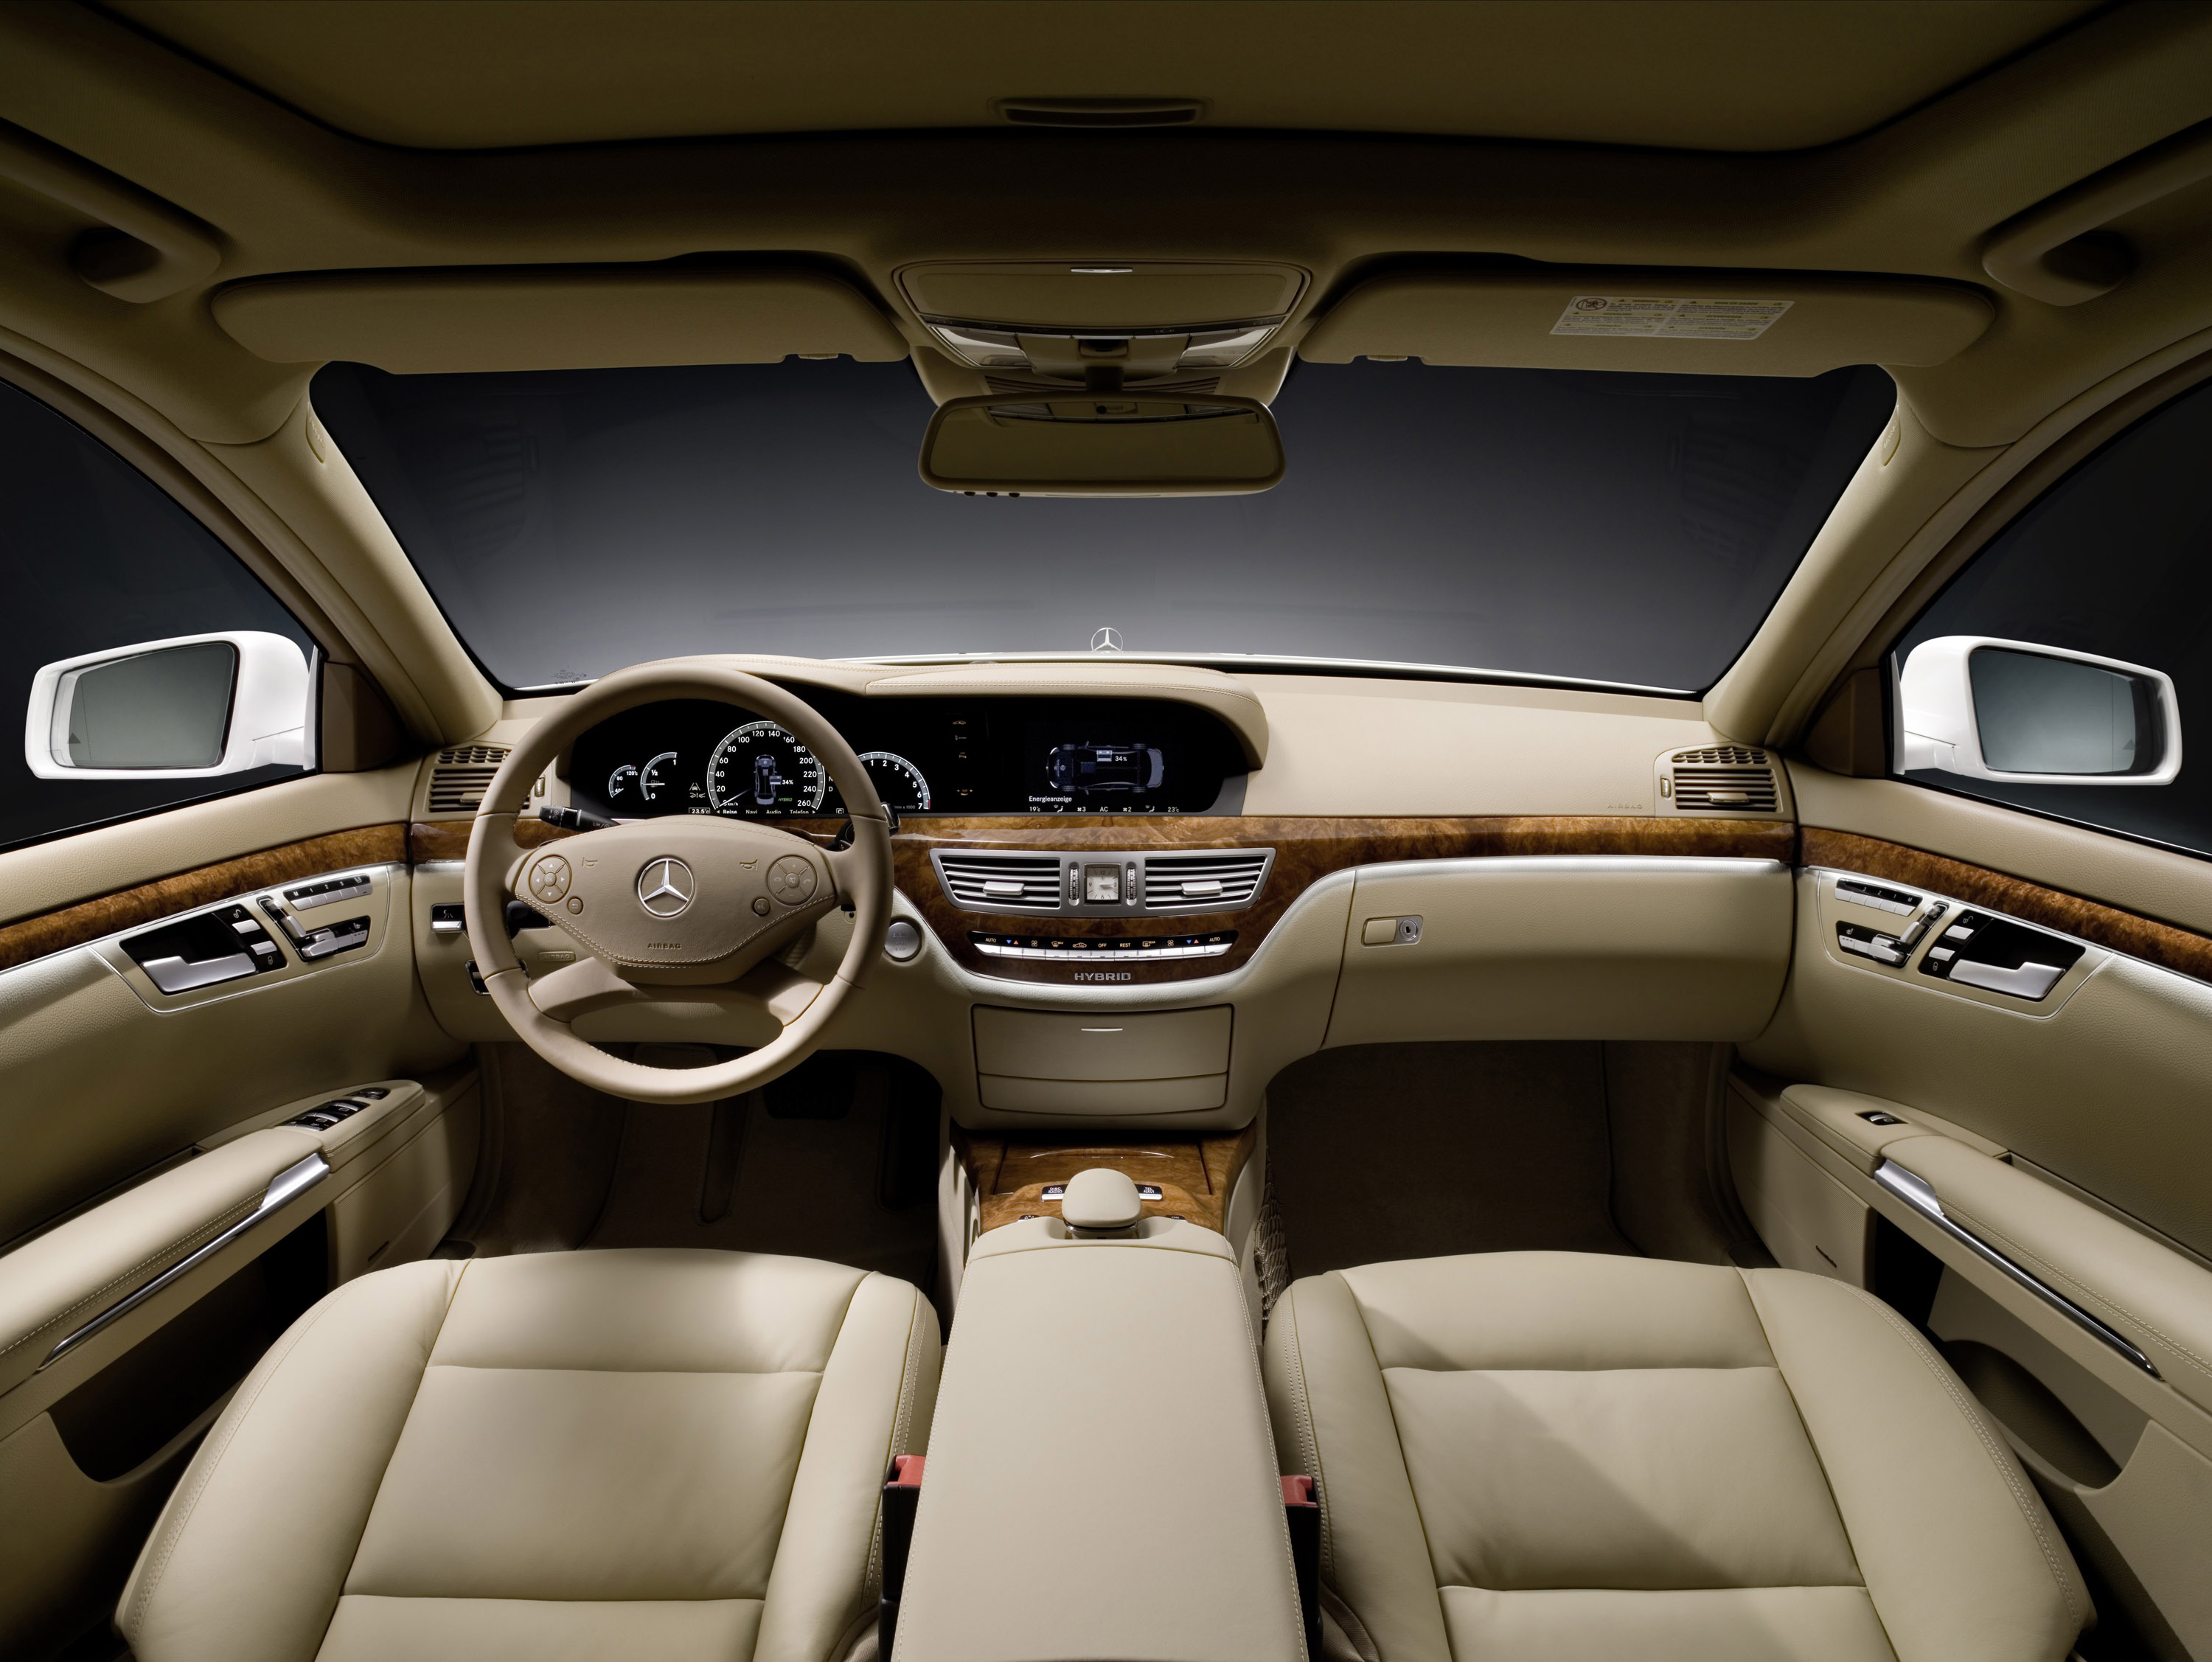 Mercedes benz s class awarded best luxury car for 2009 s class mercedes benz